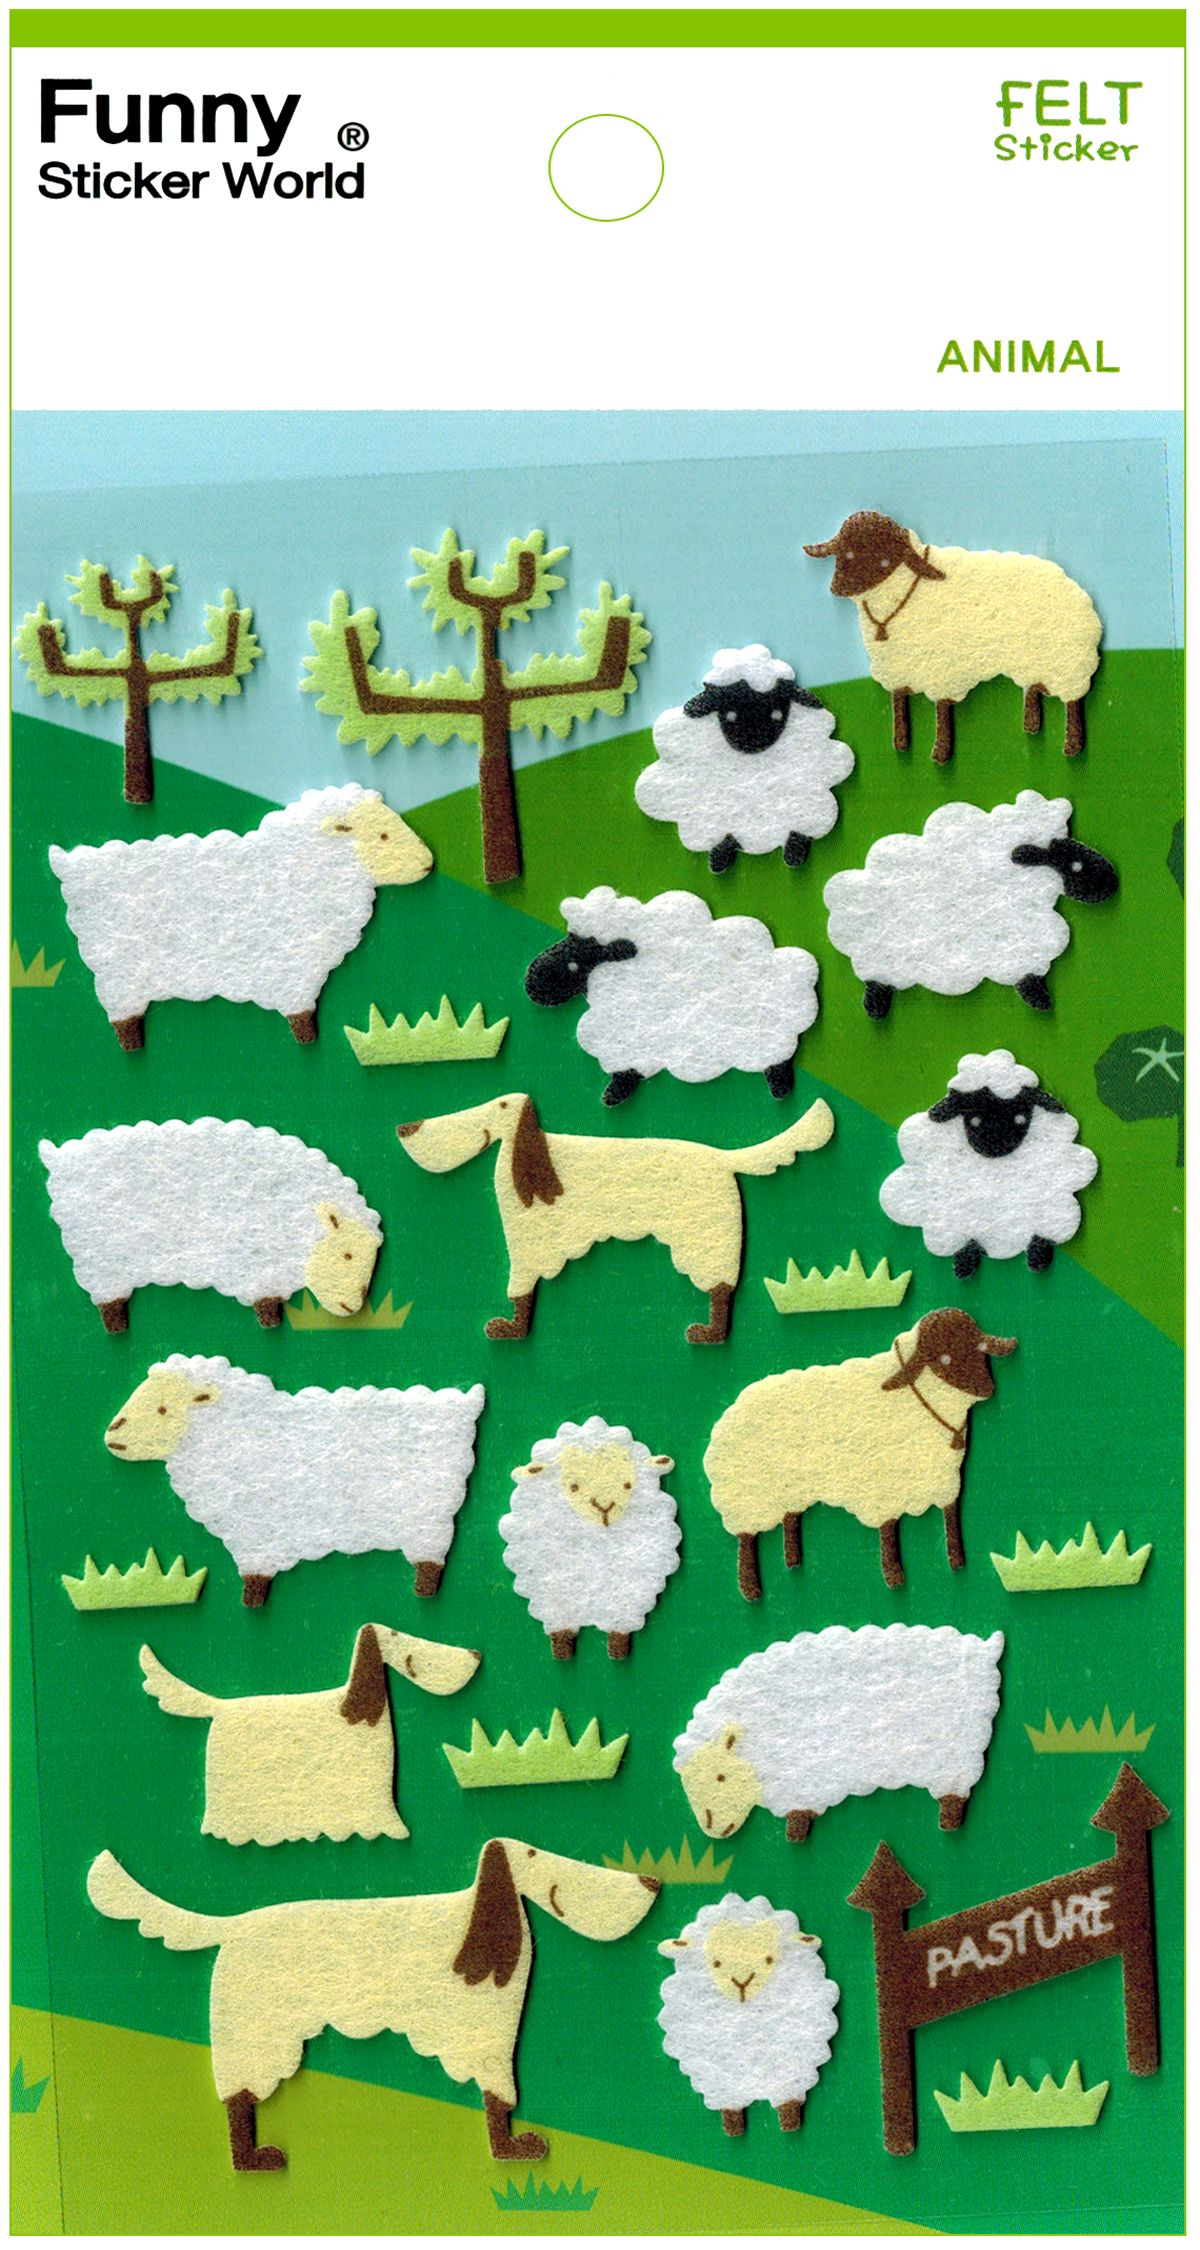 מדבקות לבד Funny Sticker World - Sheep